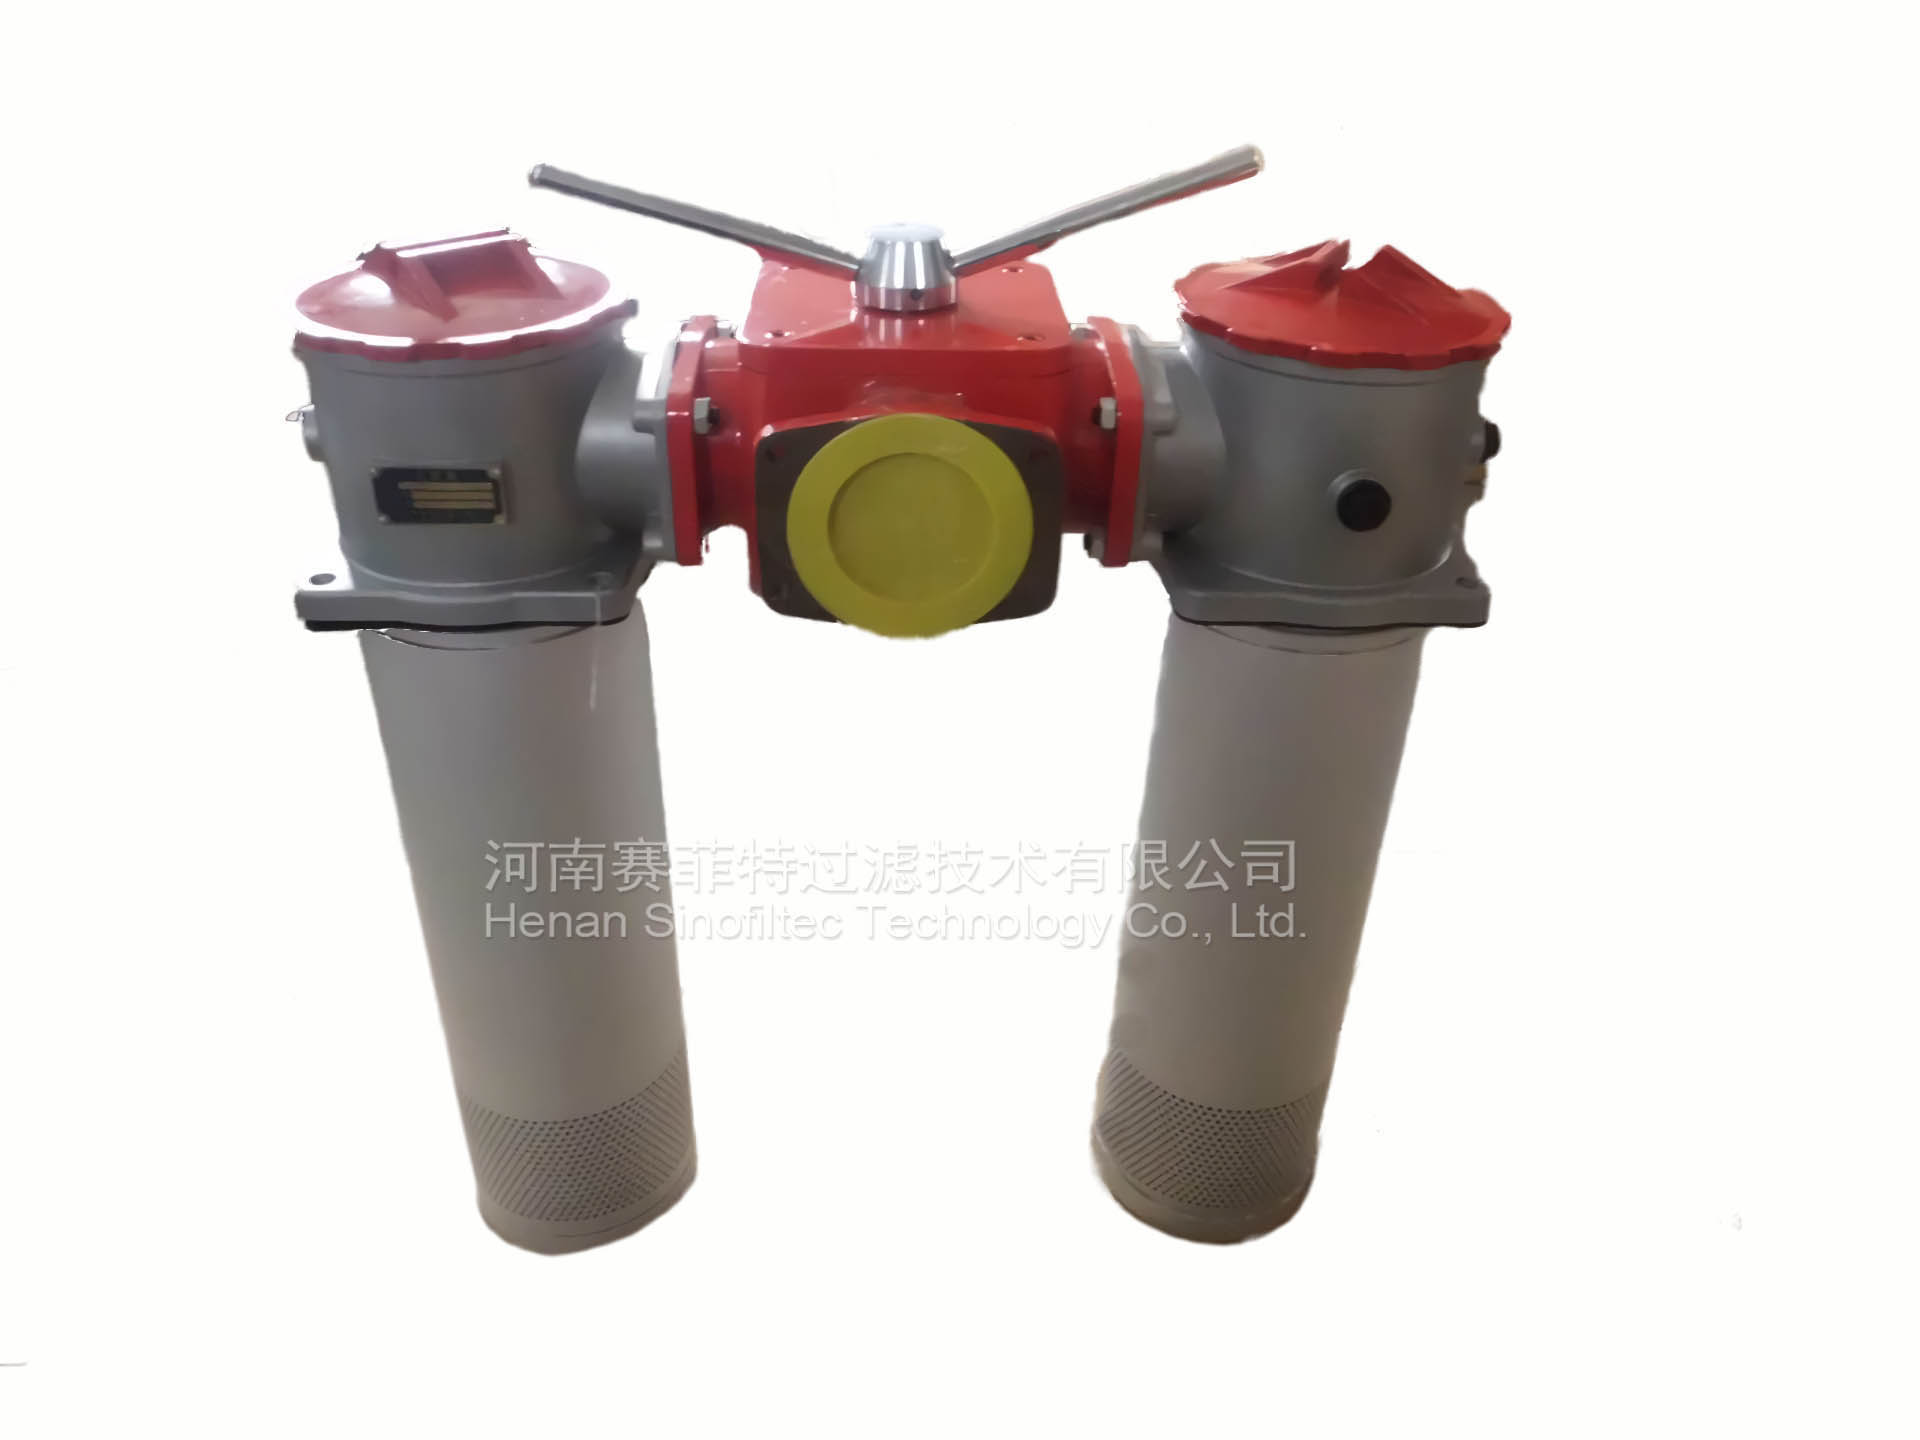 SRFA Duplex Tank Mounted Mini-Type Return Filter Series (2)